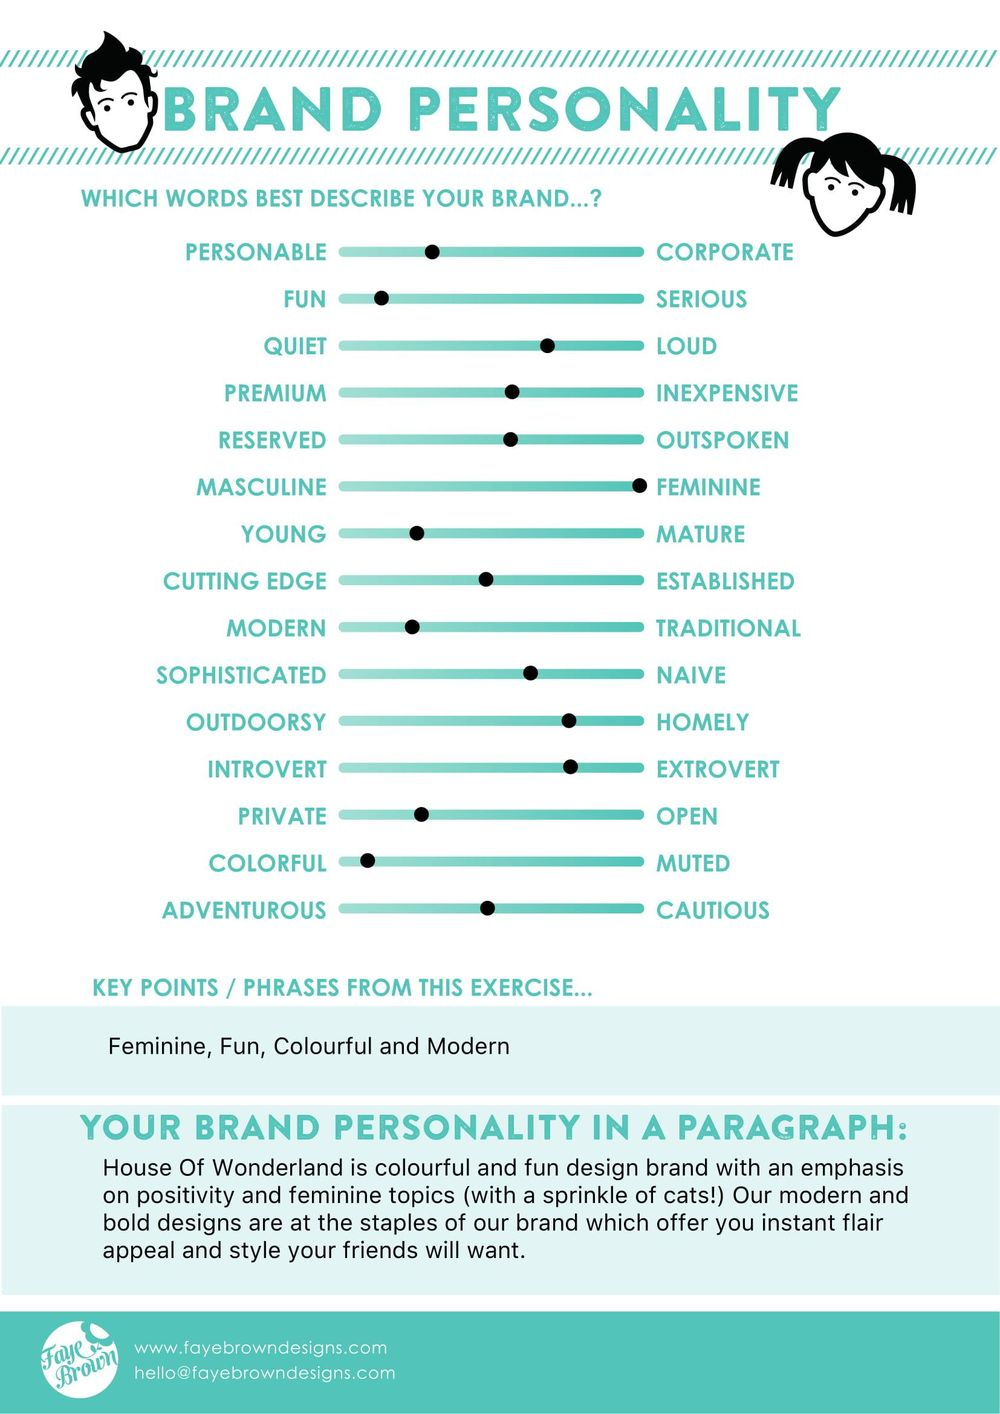 Brand Personality Profile for HOW - image 2 - student project